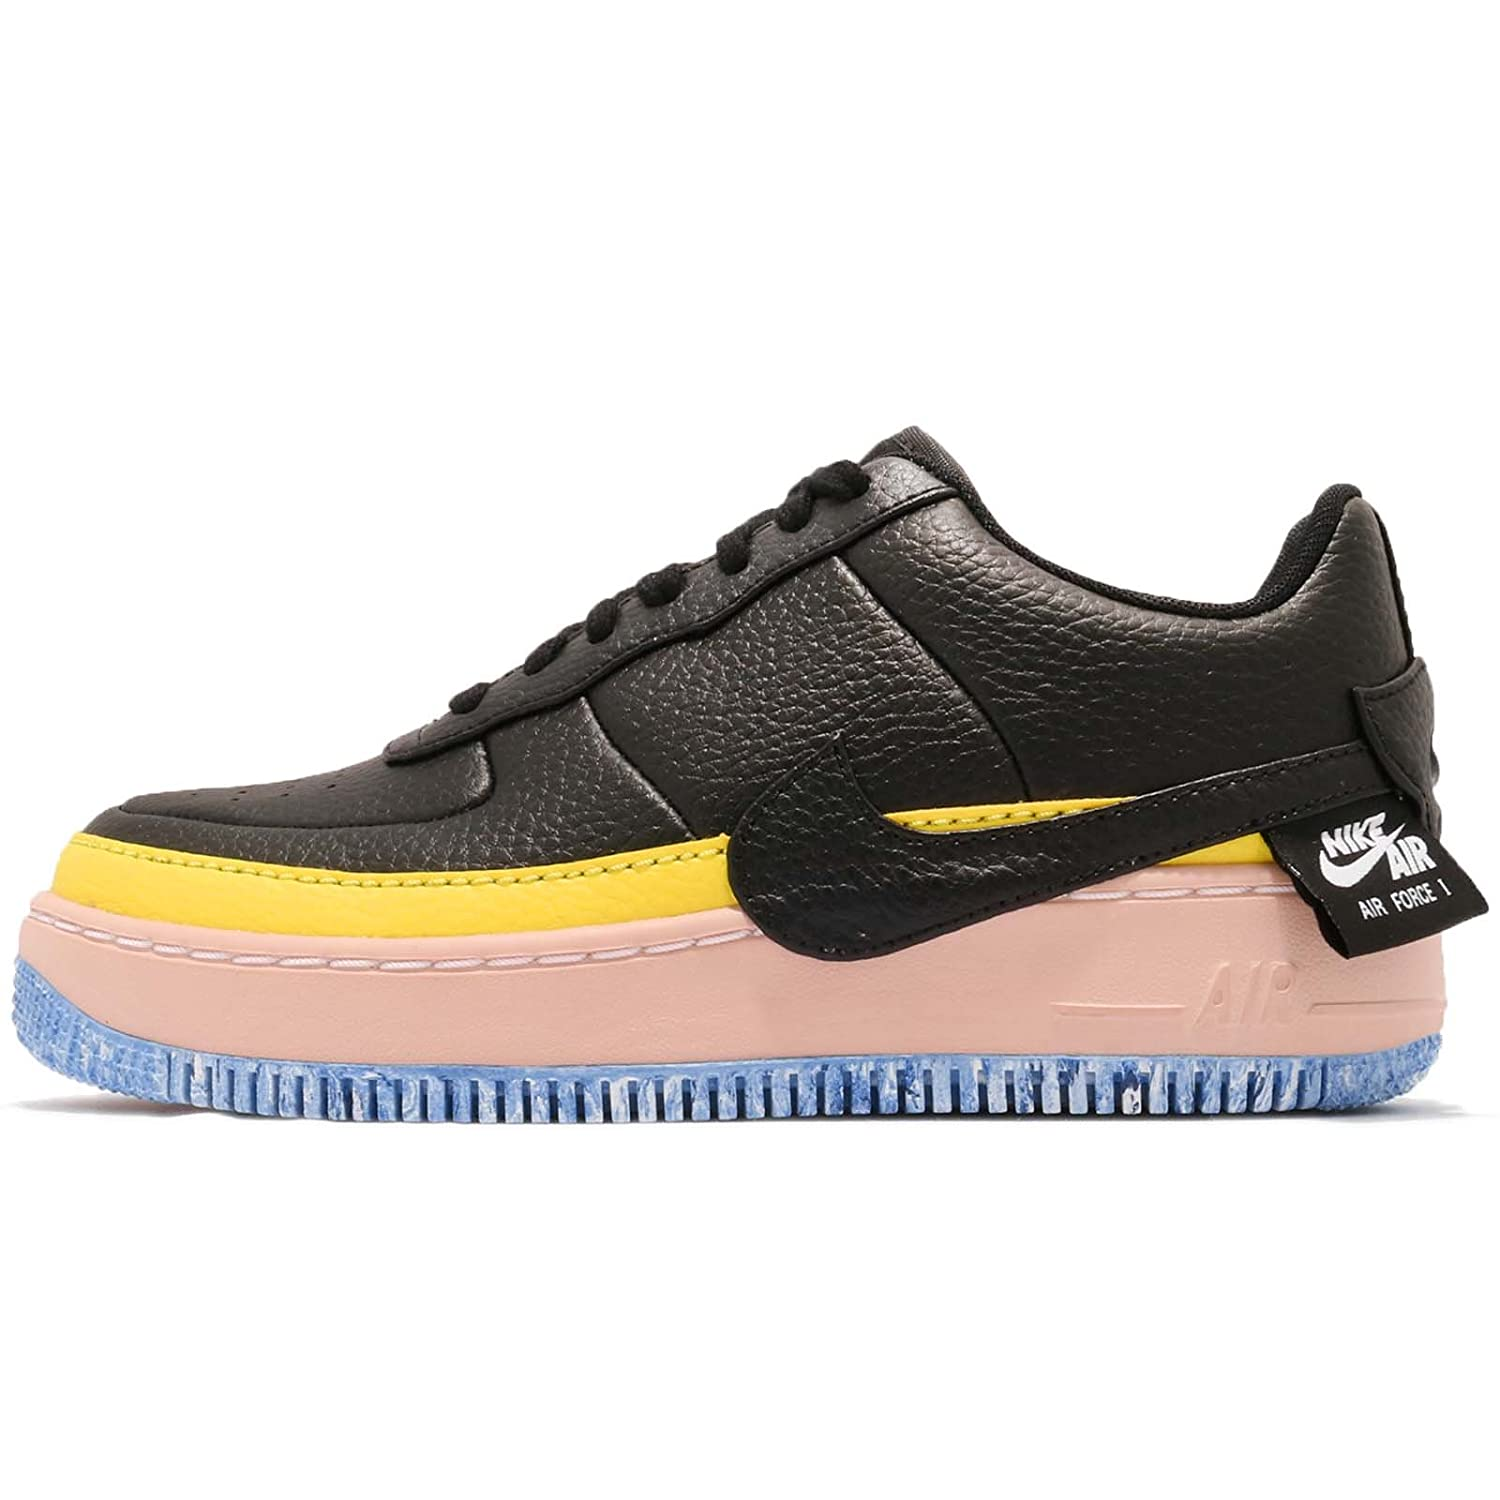 sale retailer d0d37 e2ef4 Nike Women's WMNS Air Force 1 Jester XX SE, Black/Sonic ...